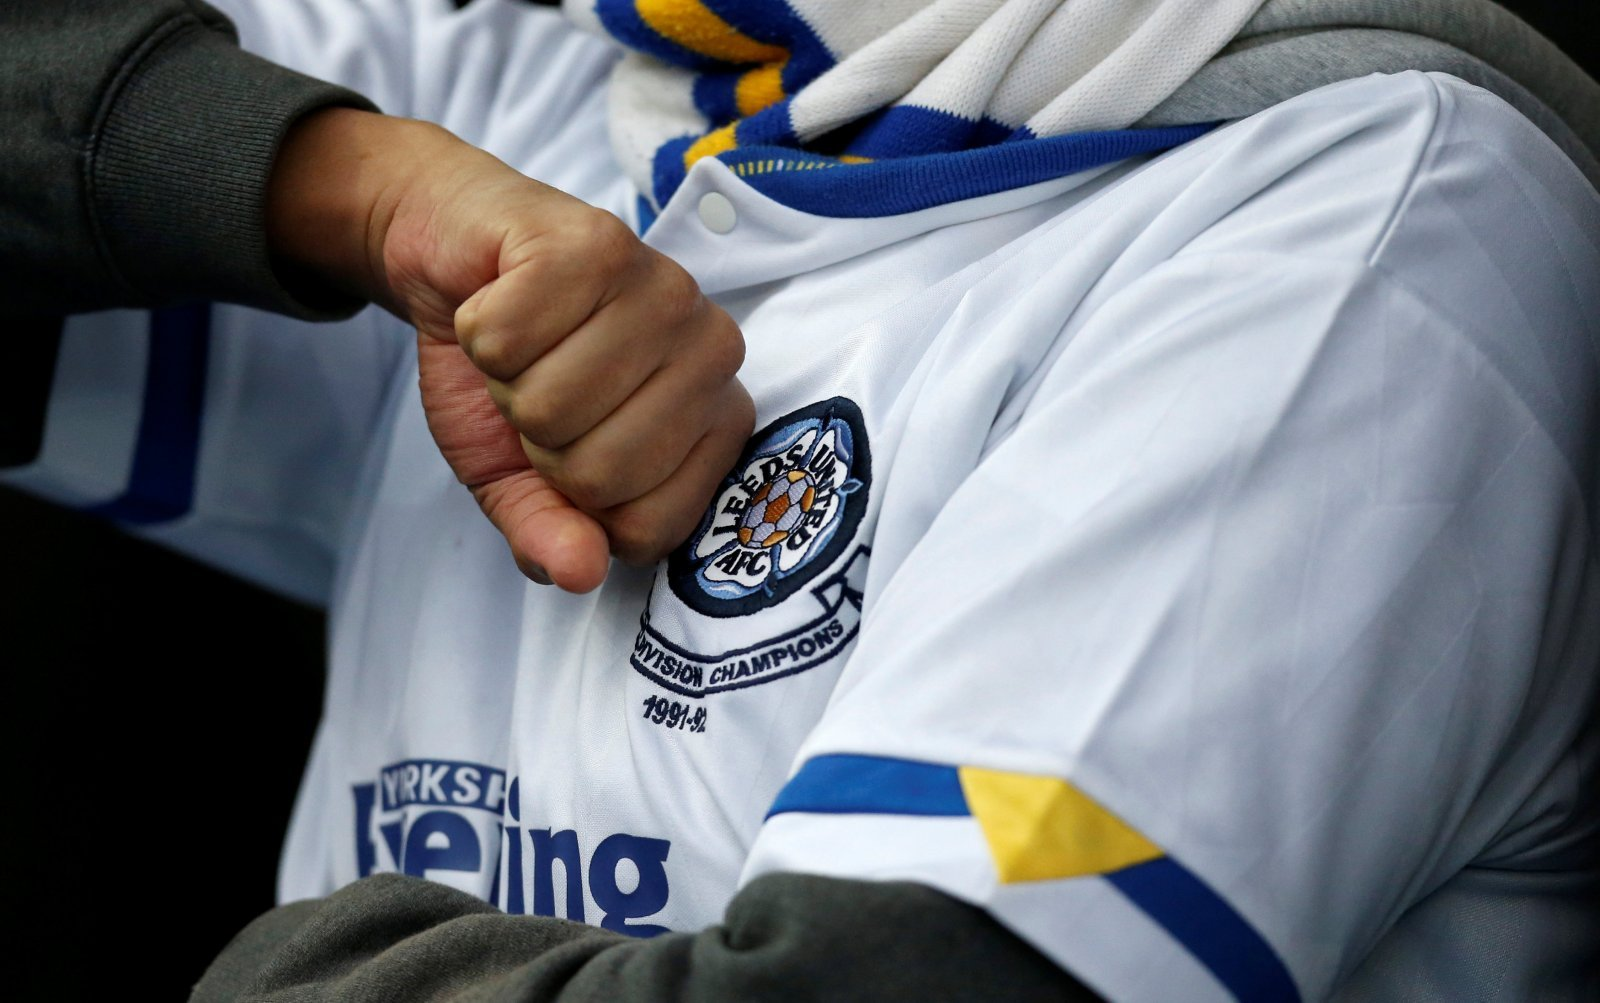 Leeds United's U18 side thrill supporters on Twitter